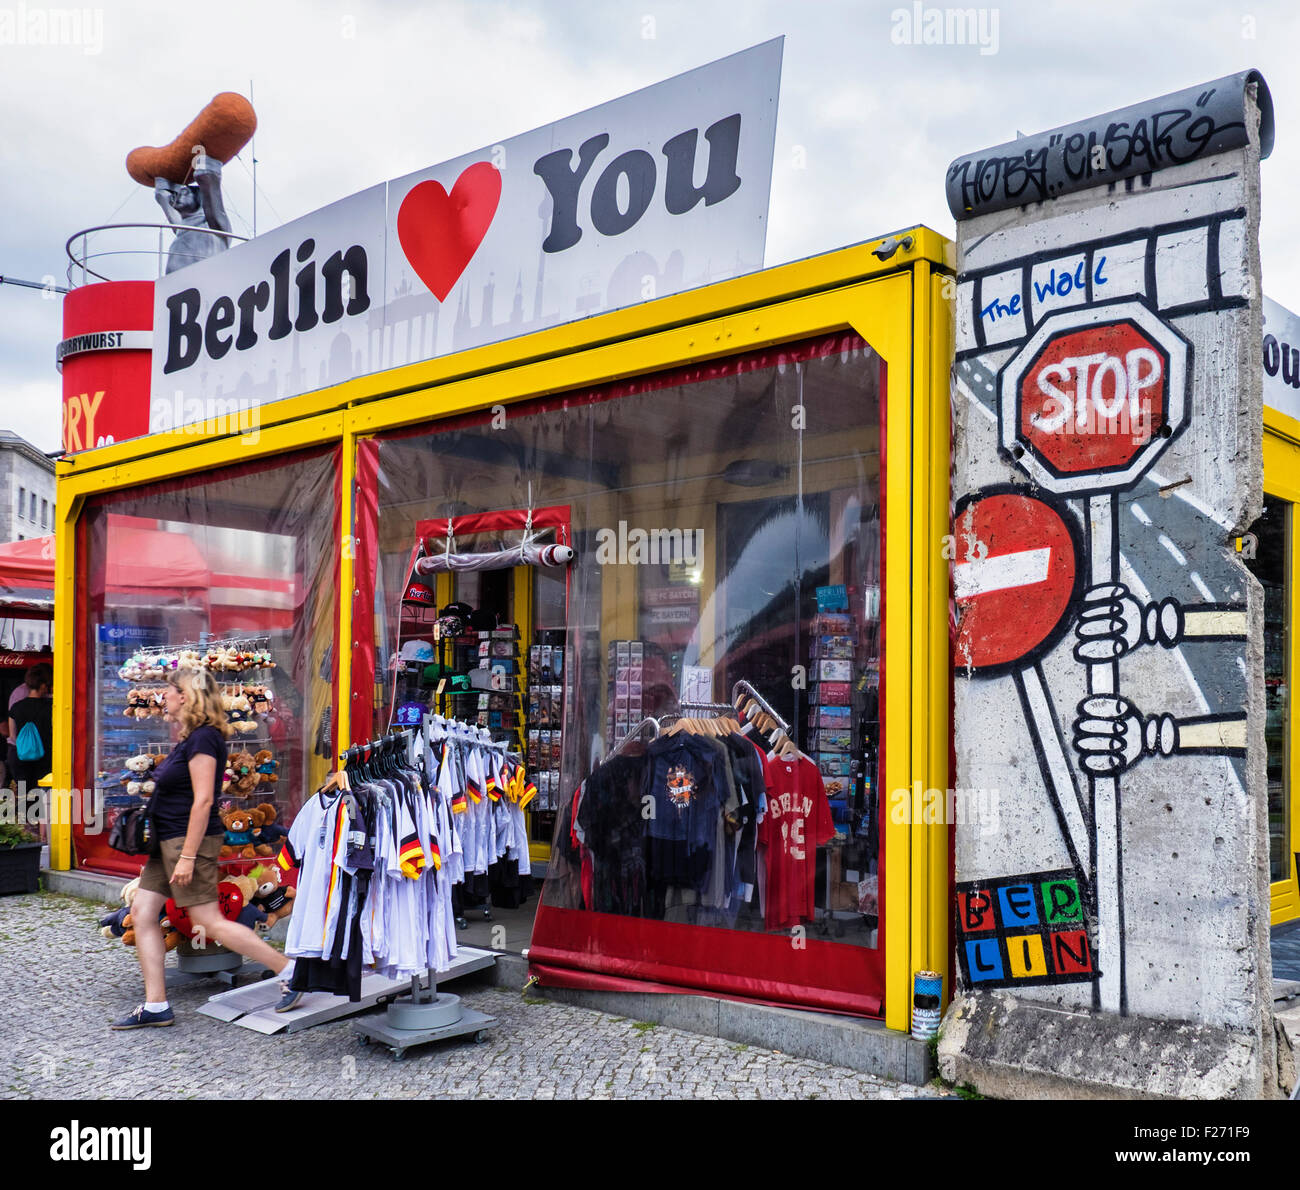 Berlin Tourist attraction, Curio shop selling mementos and Berlin Wall fragment - Stock Image